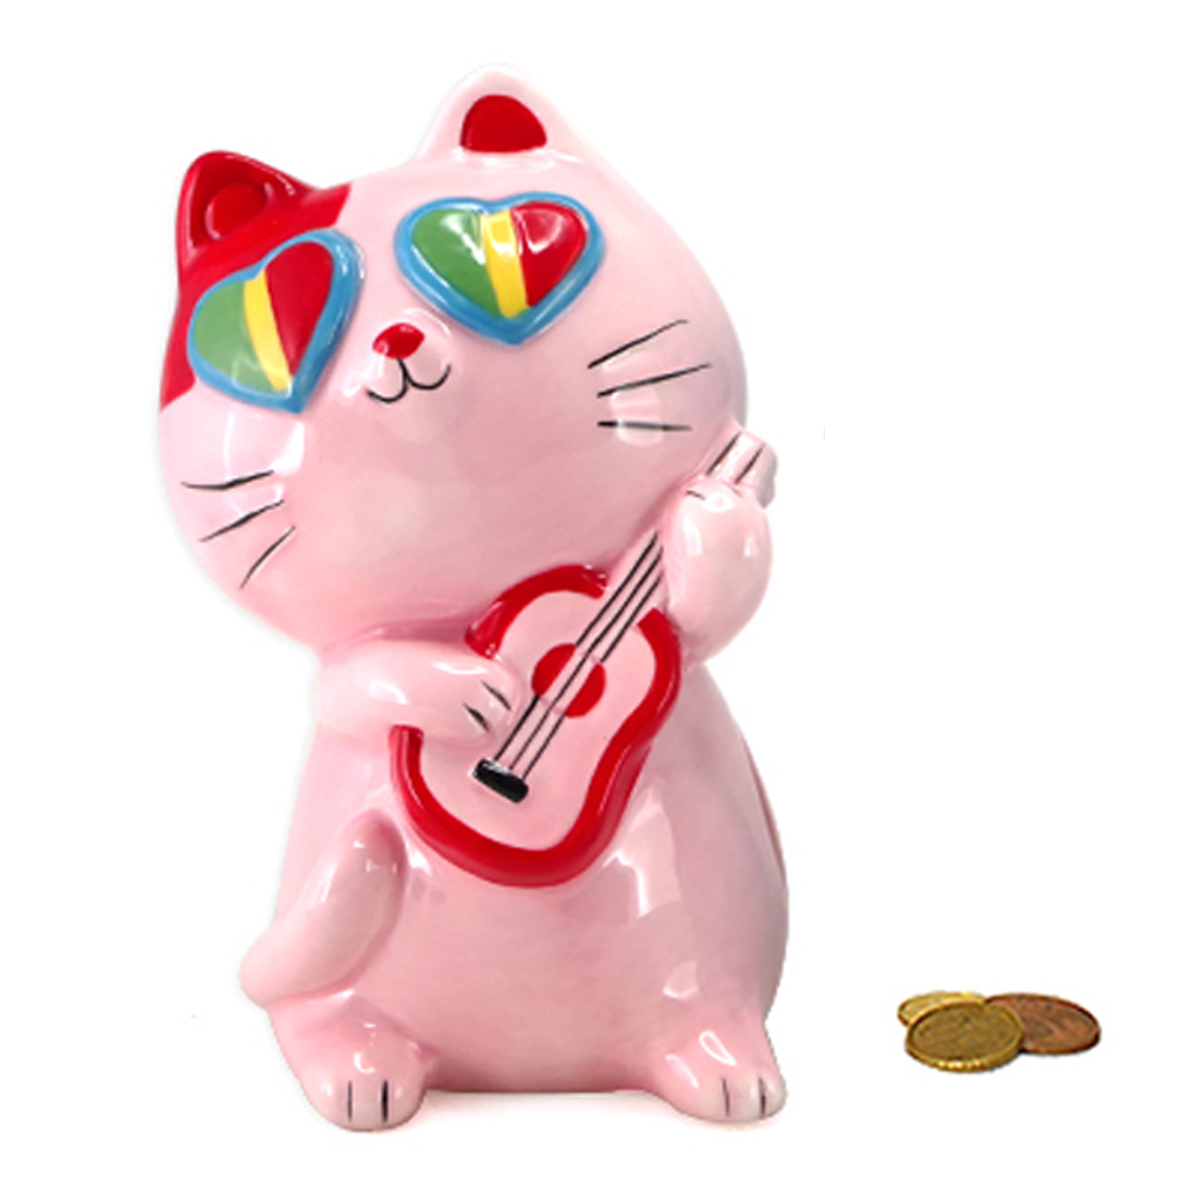 Tirelire céramique \'Chat Musicien\' rose - 14x9x8 cm - [A2463]